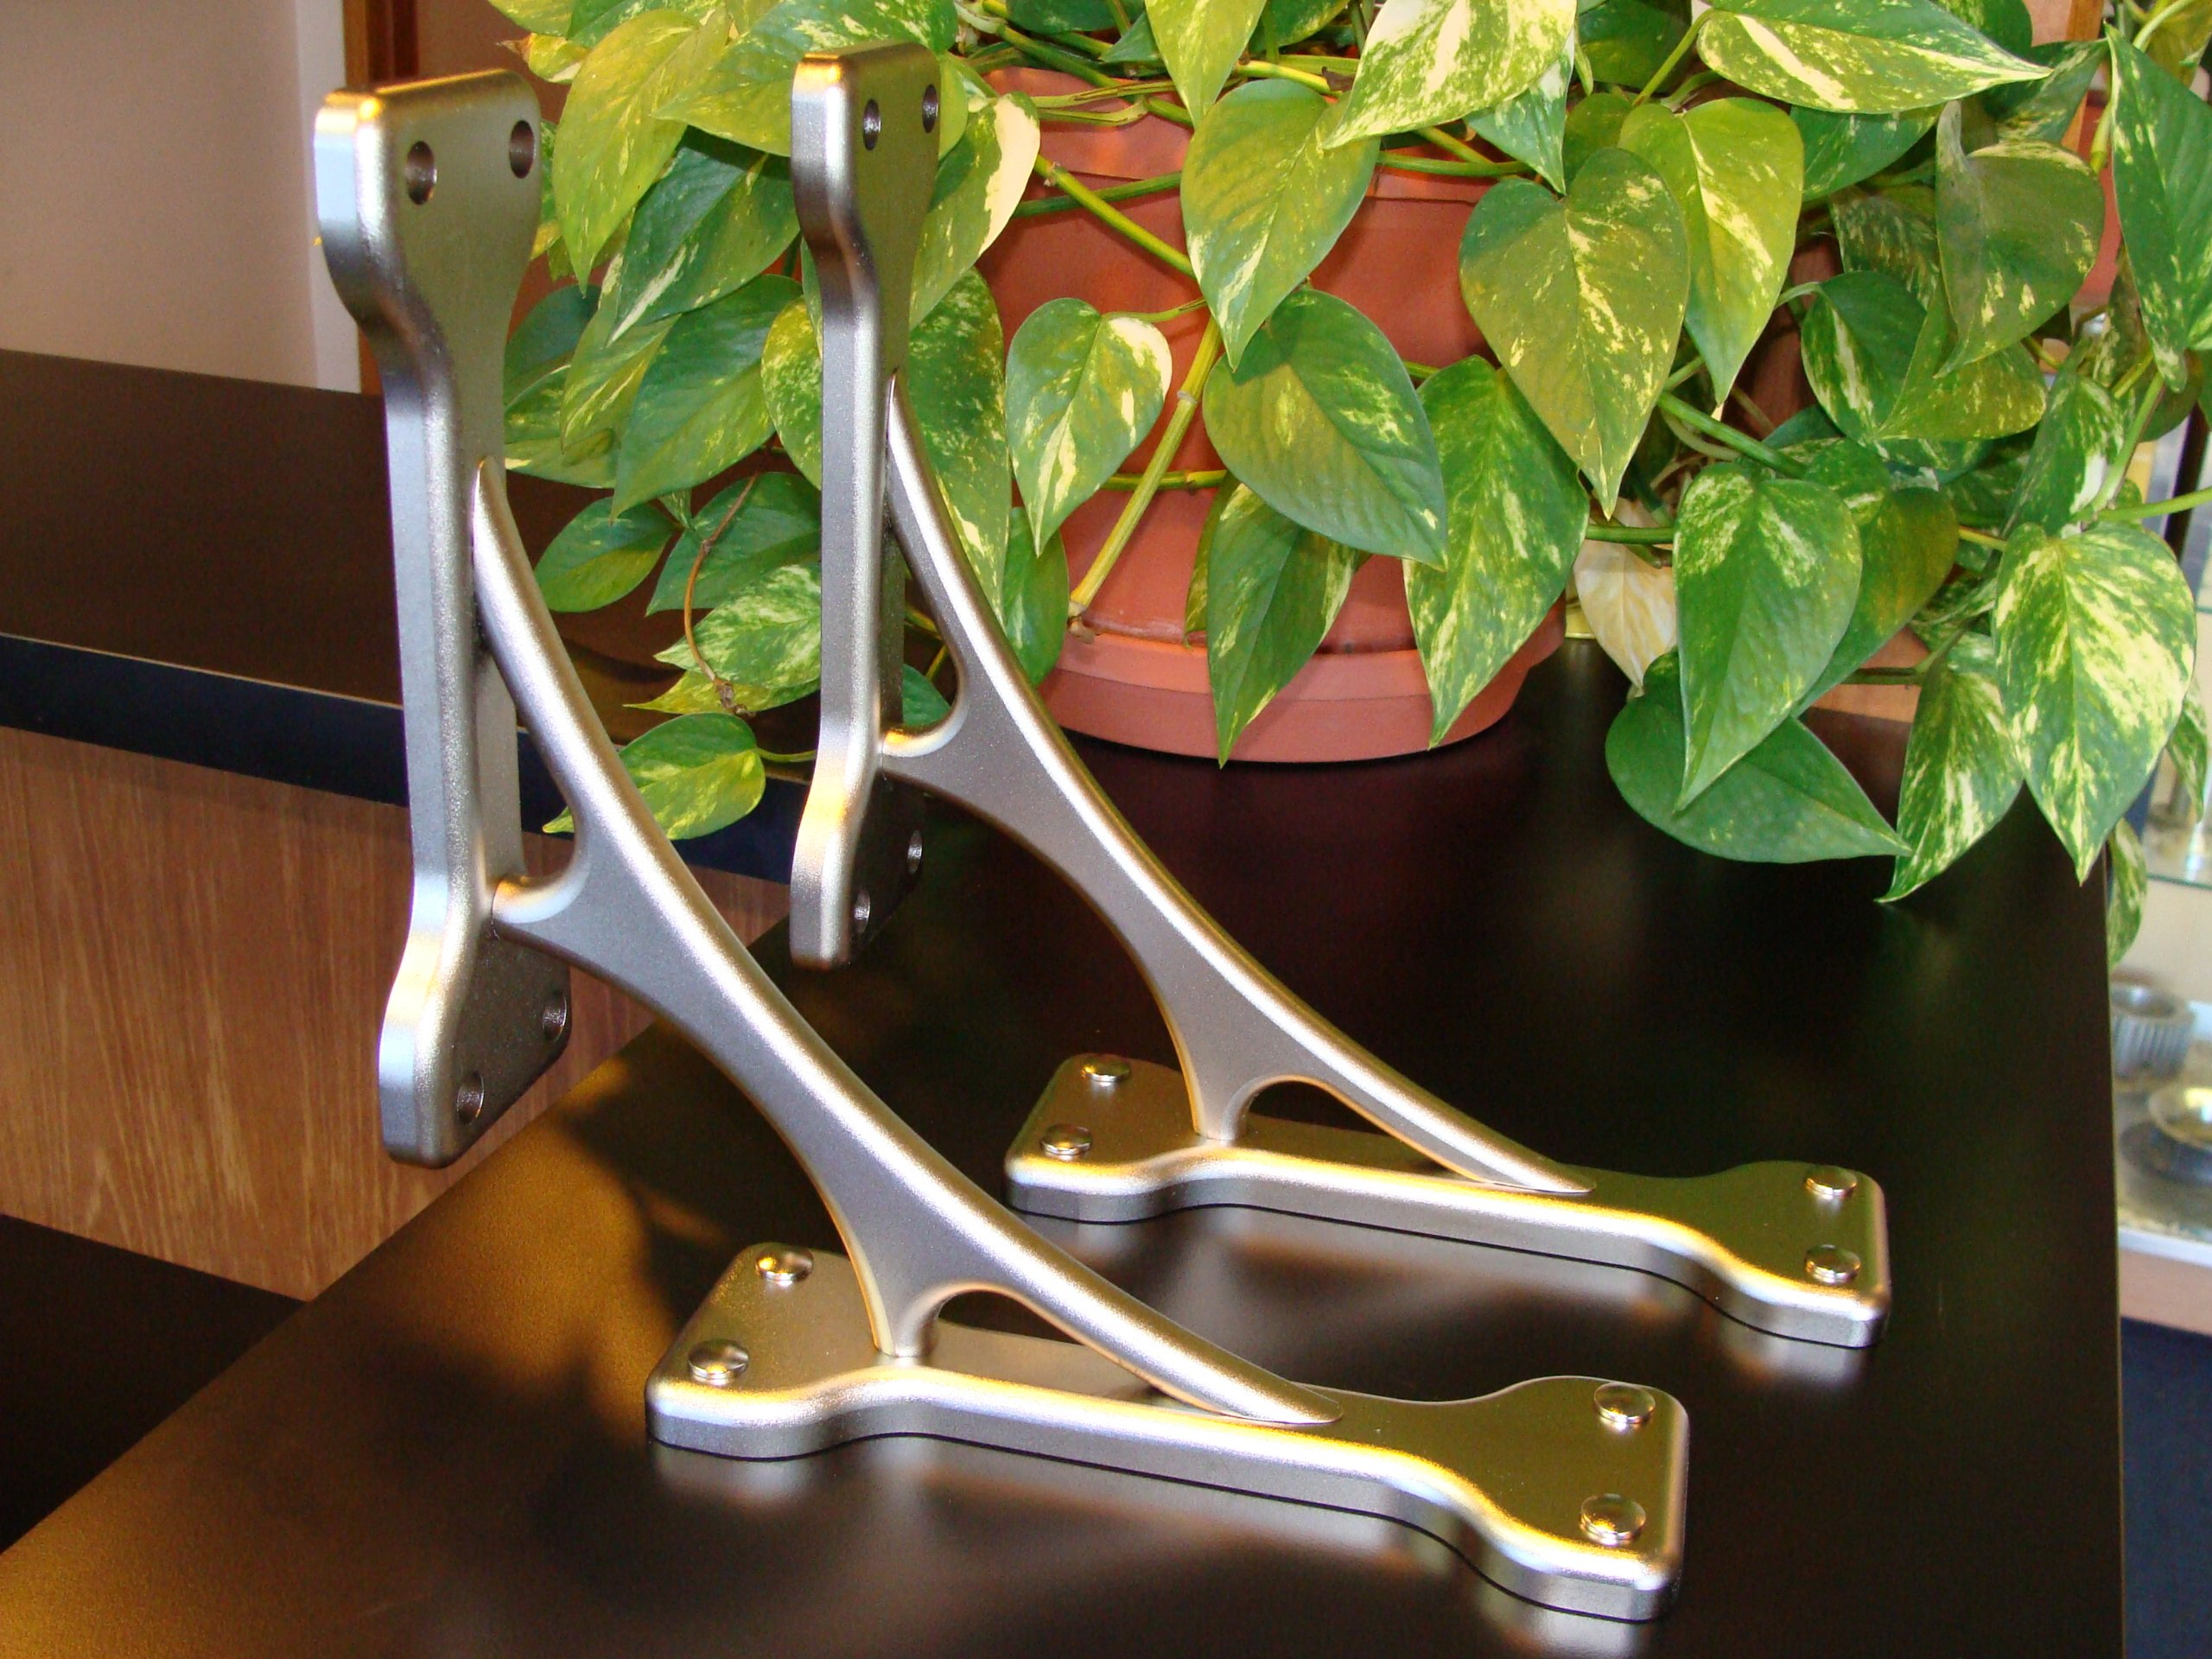 Qty. 1 Solstice 2,1/2''w X 10''d X 10''h Satin Nickel Aluminum Bracket / Corbel / Countertop Support / Shelf Bracket (Supports up to 250lbs.) Matches Stainless Steel. All of Our Corbels Are Sold As Each by Asigma Designs